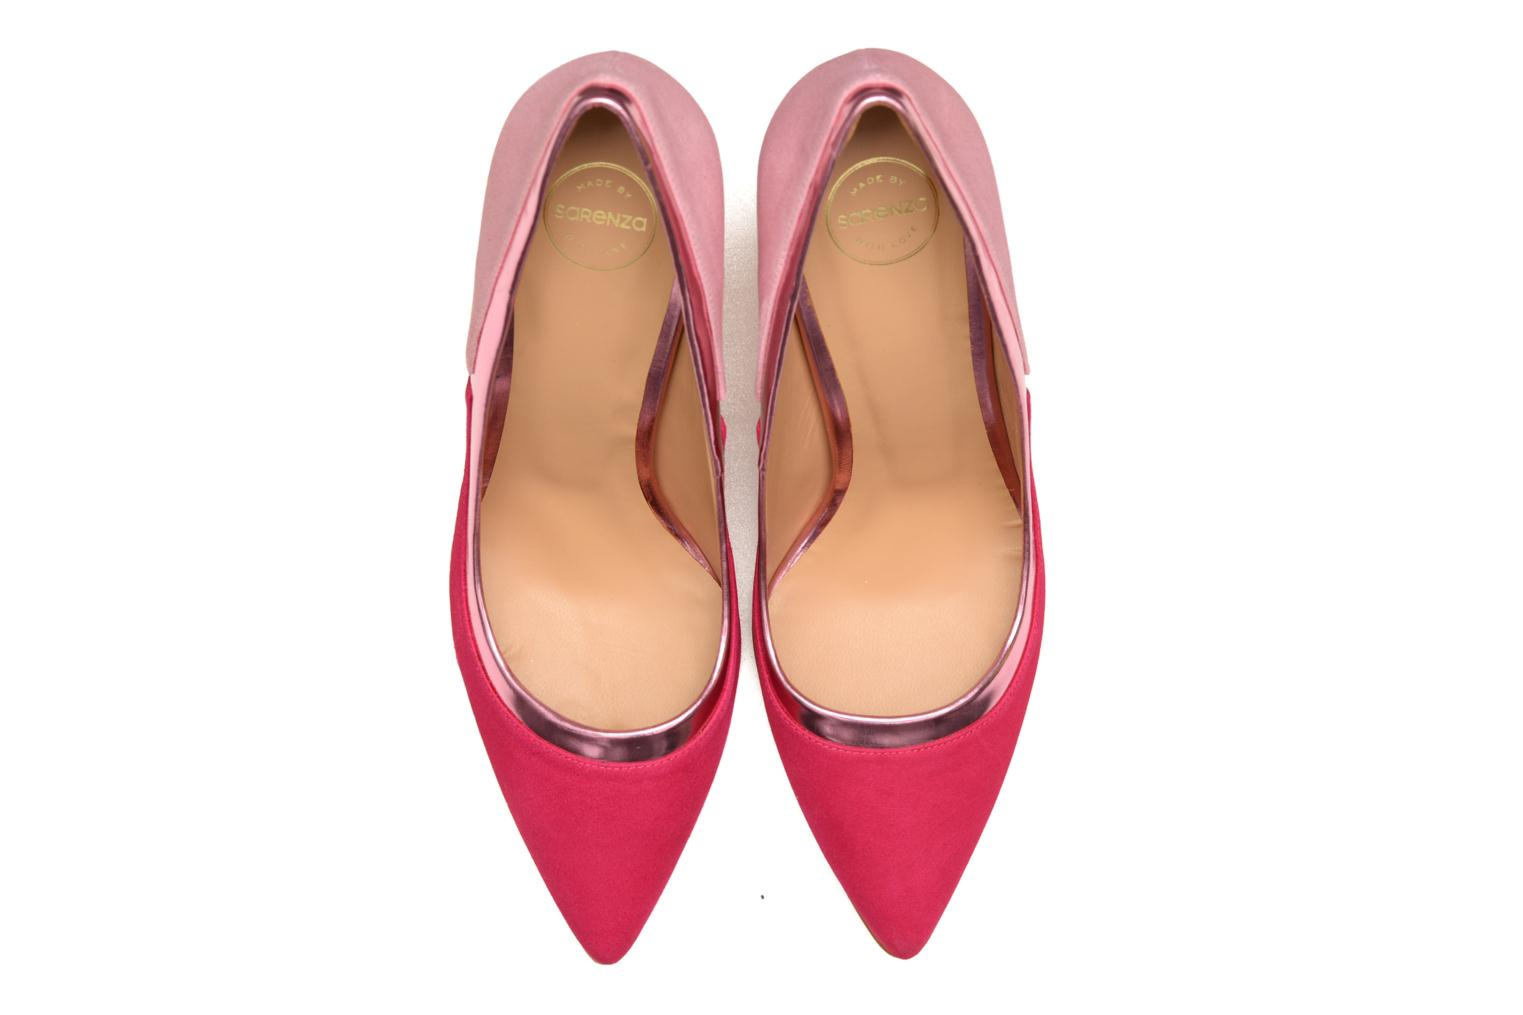 Notting Heels #1 Ante pink ray + Specchio rose pink + Ante chaplin